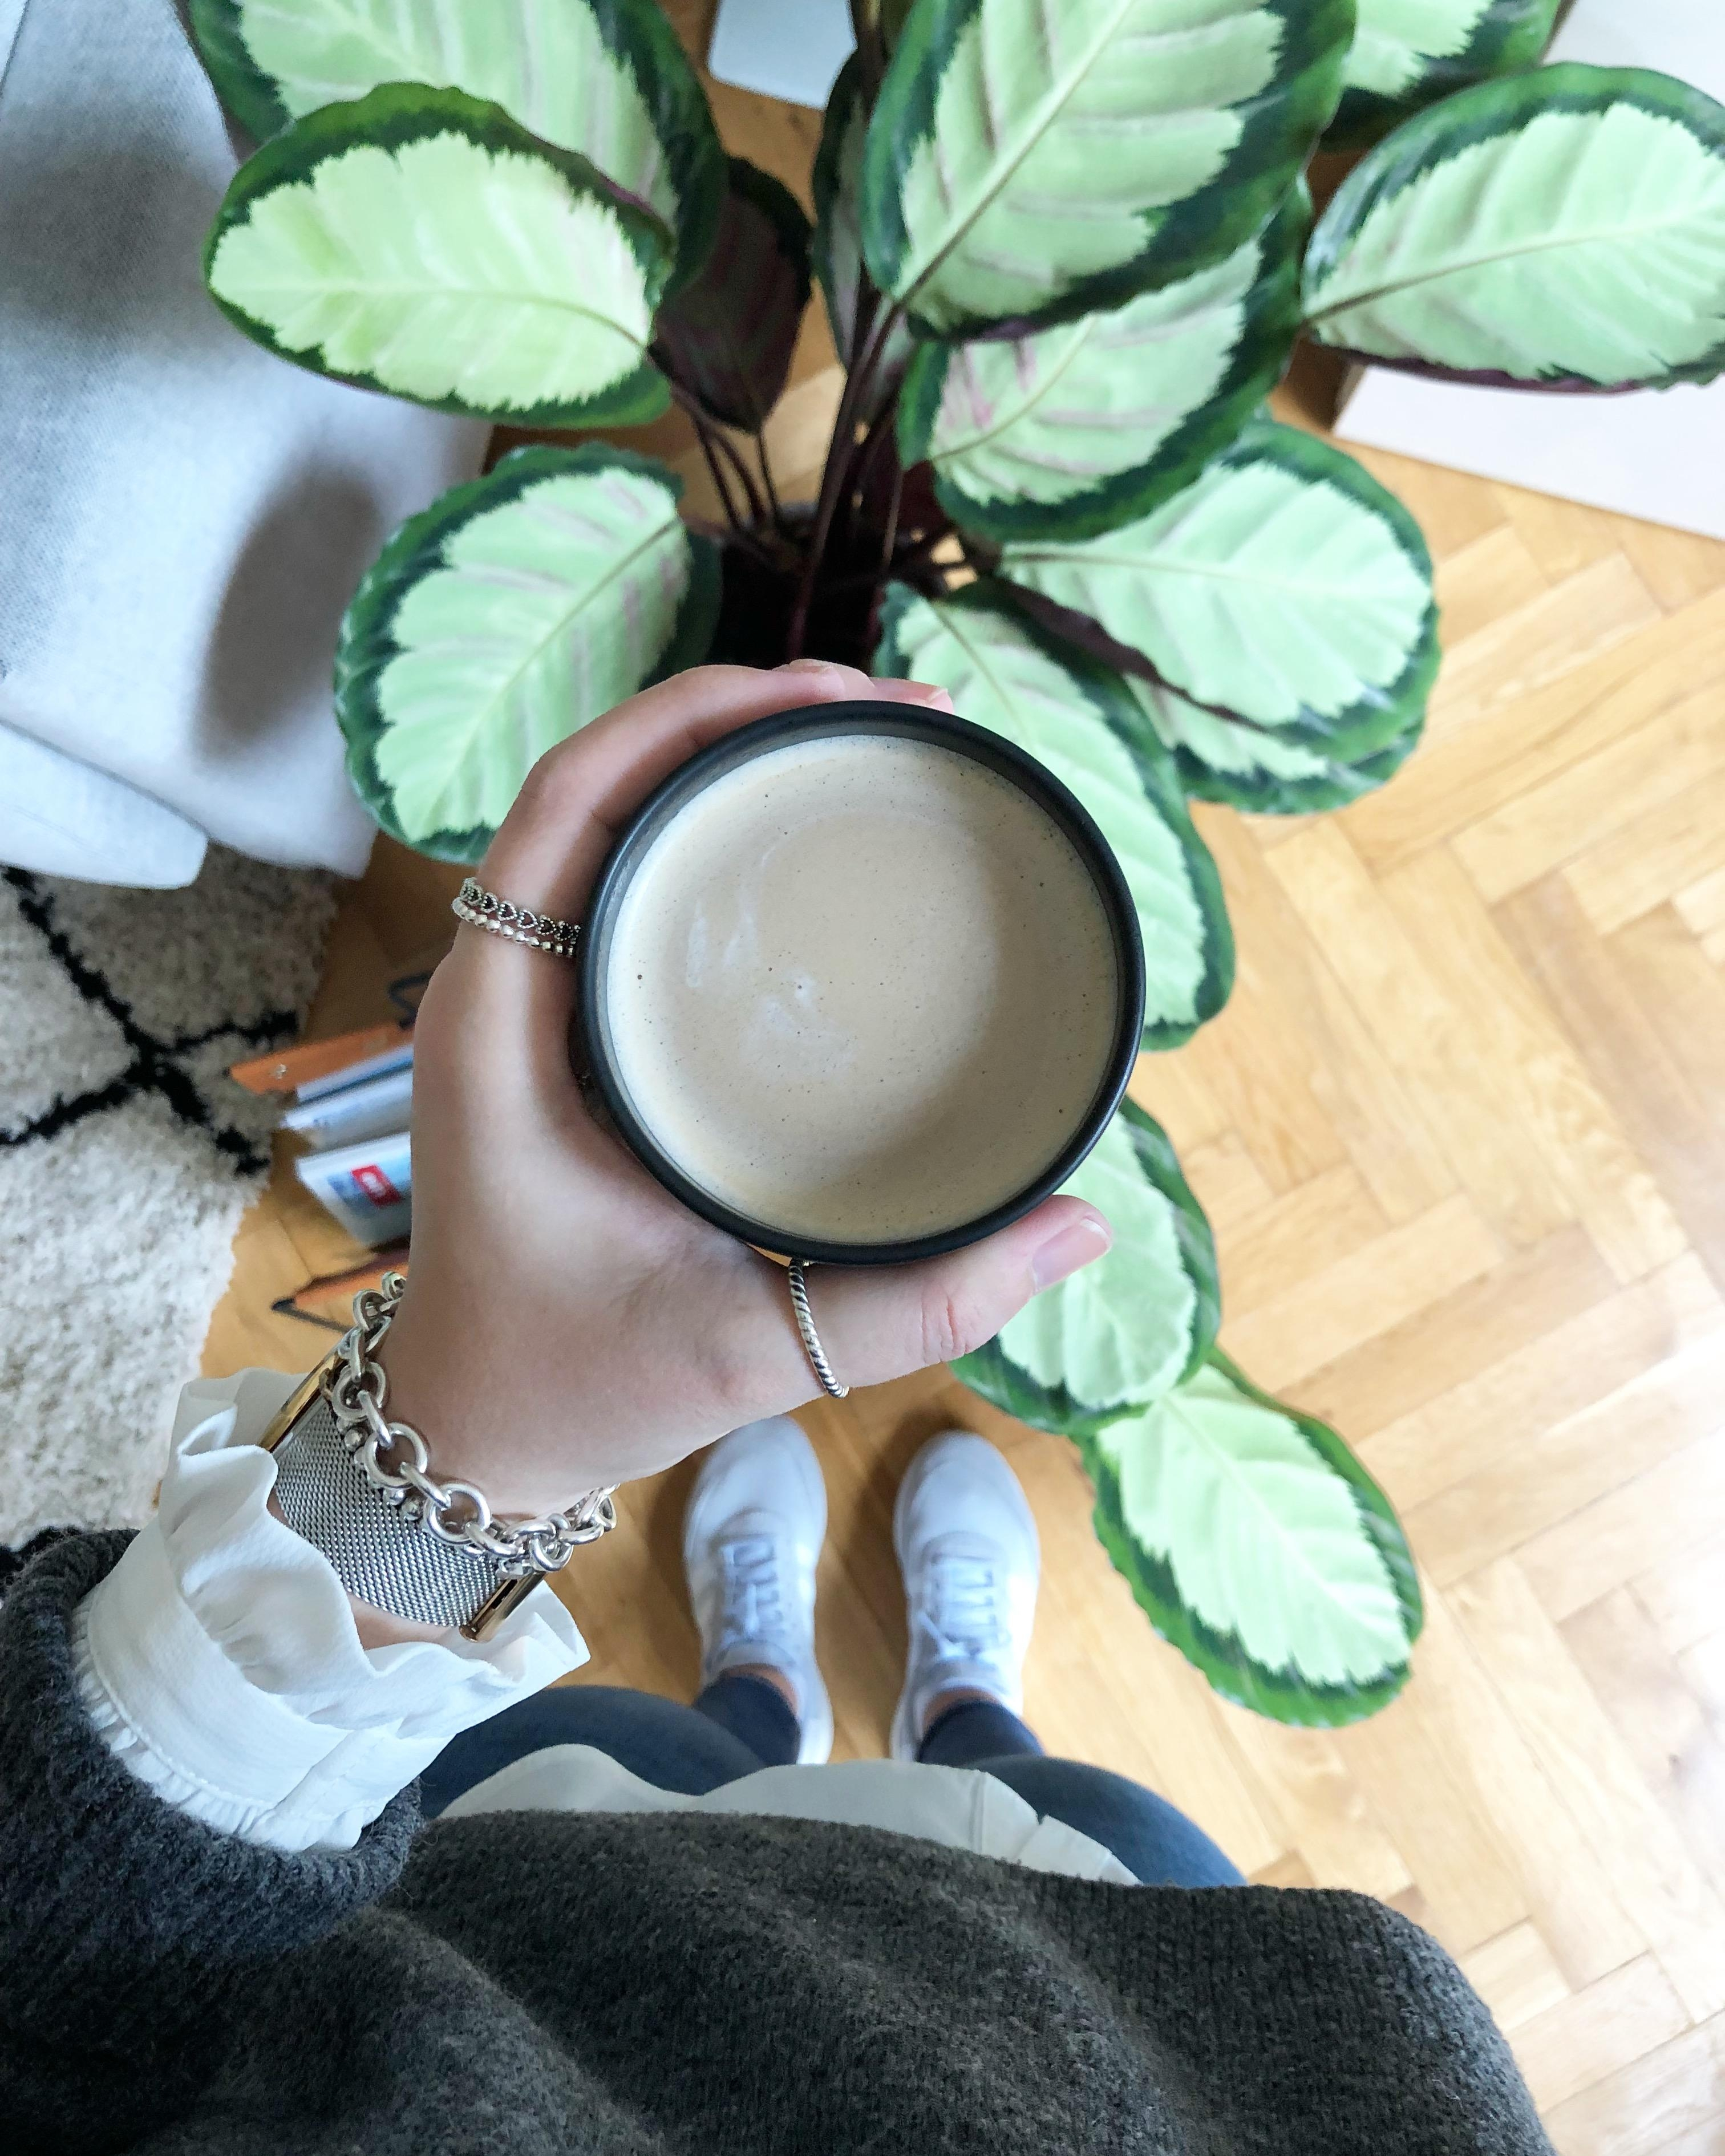 Montag überstanden. ✔️ #monday #coffee #plants #couchstyle #home